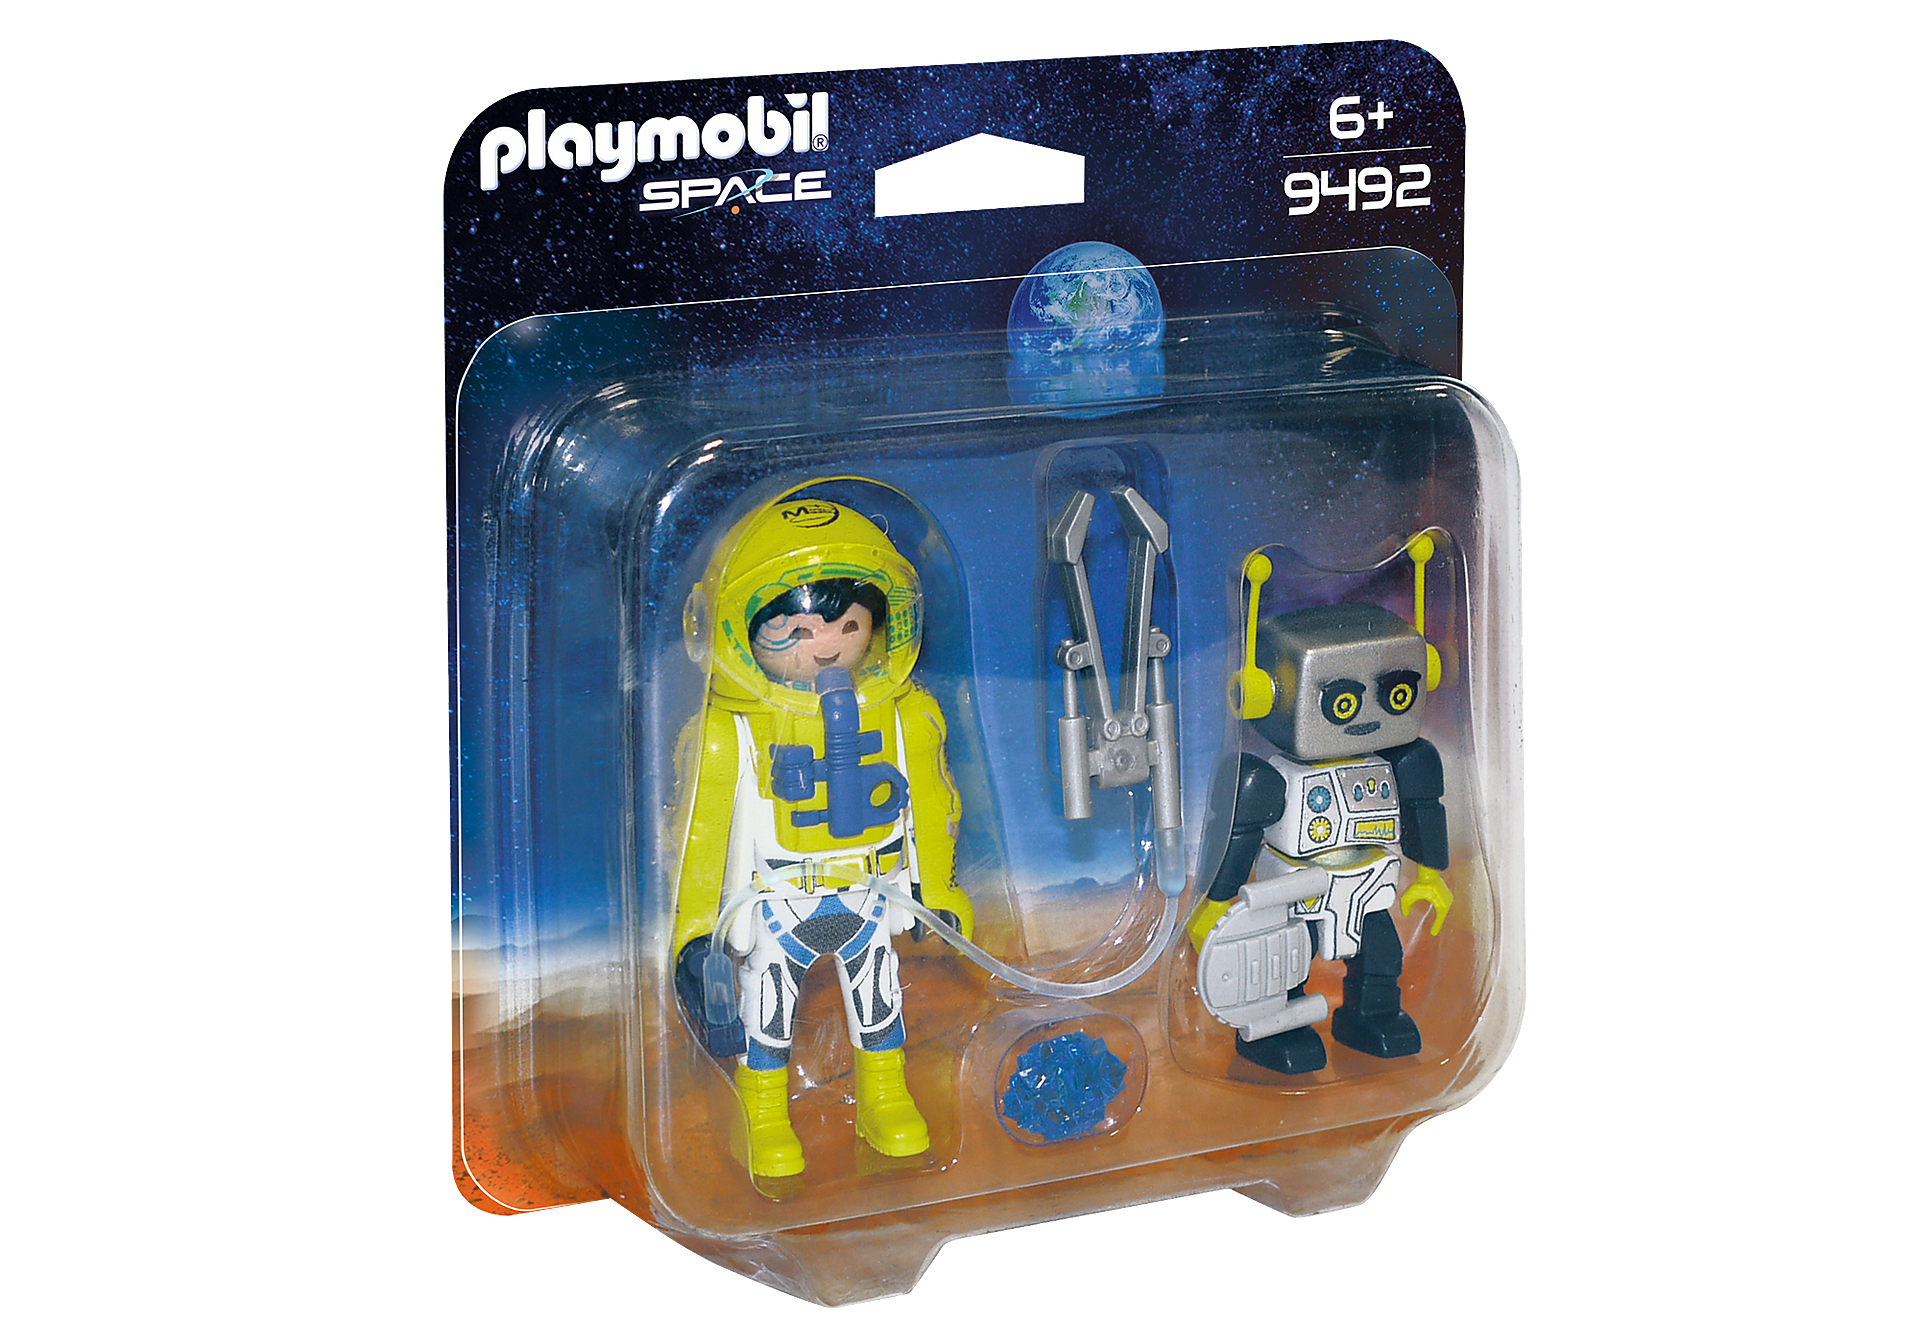 9492 Astronaut and Robot Duo Pack zoom image2